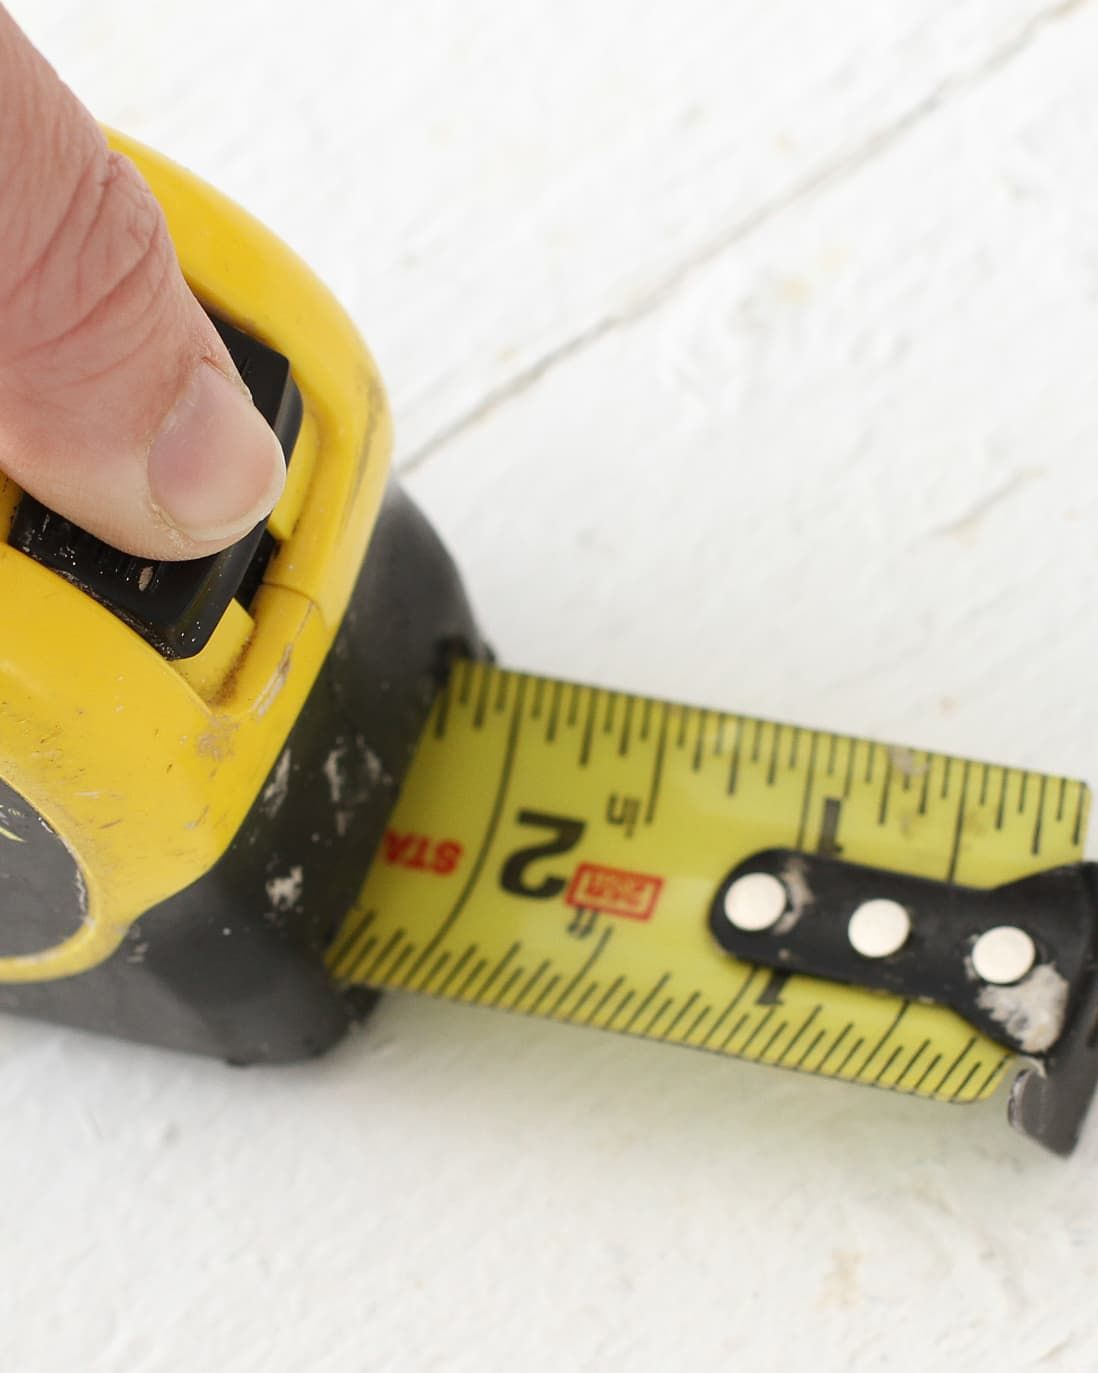 How To Use A Tape Measure The Right Way In